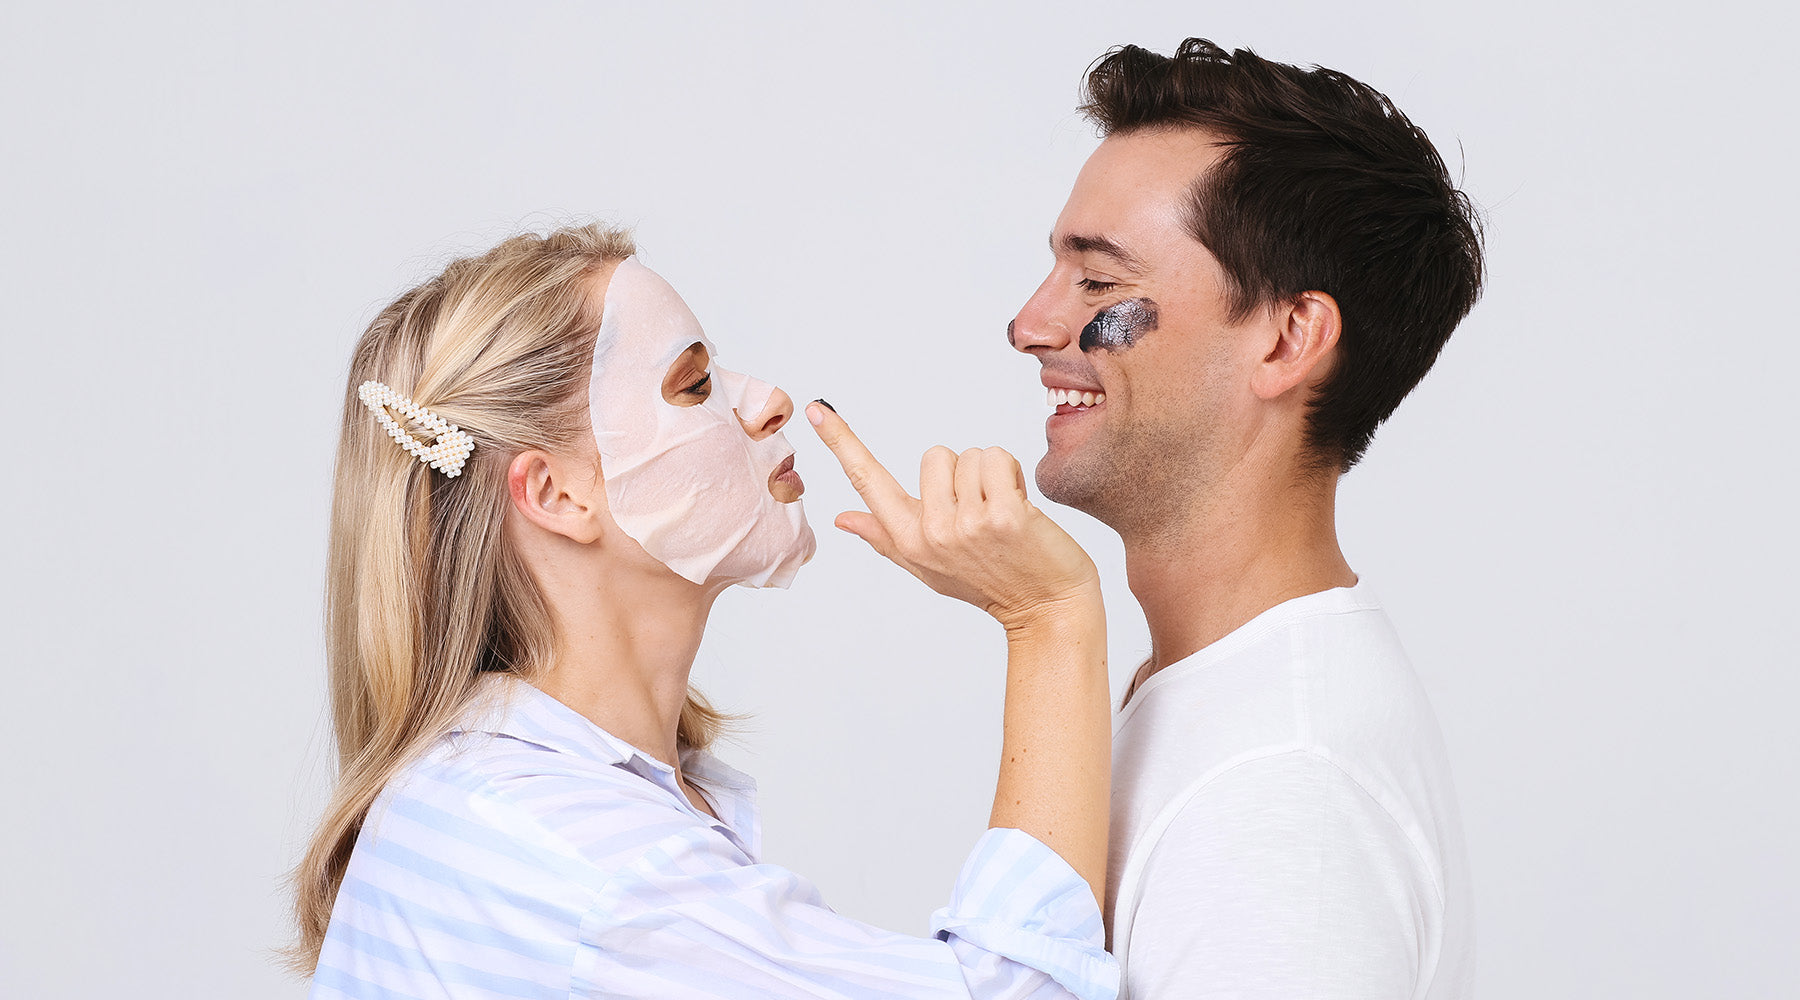 Getting Date Night Ready: His and Her Skin Care Routine